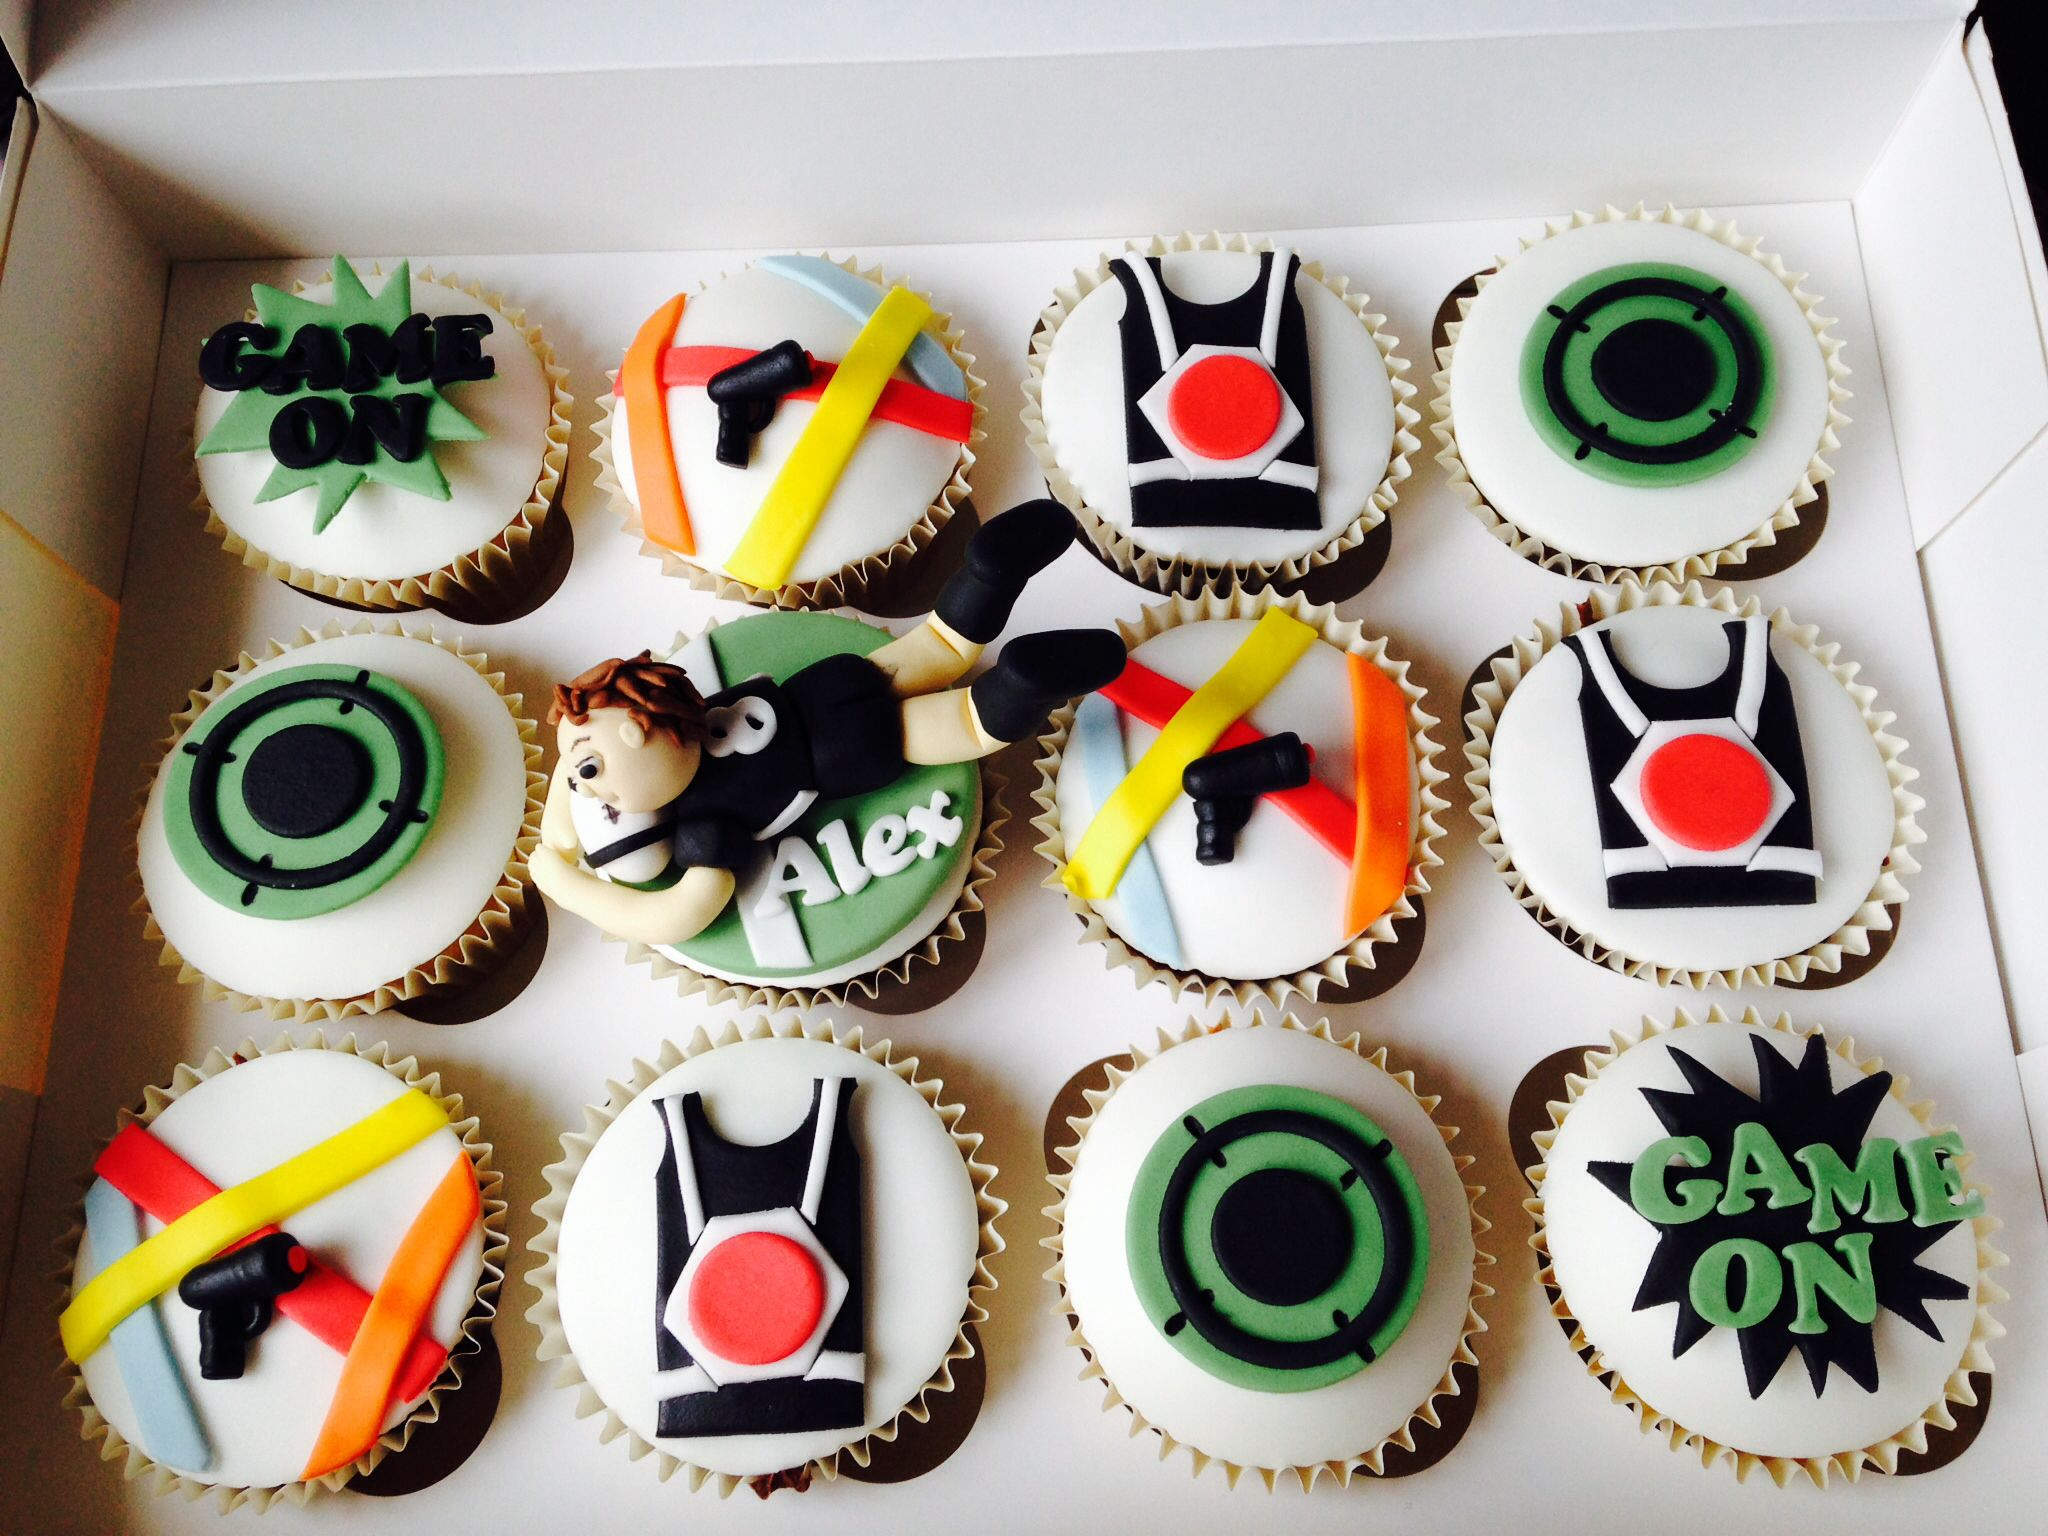 Laser Quest Cupcakes And Rugby Player Cupcake Topper